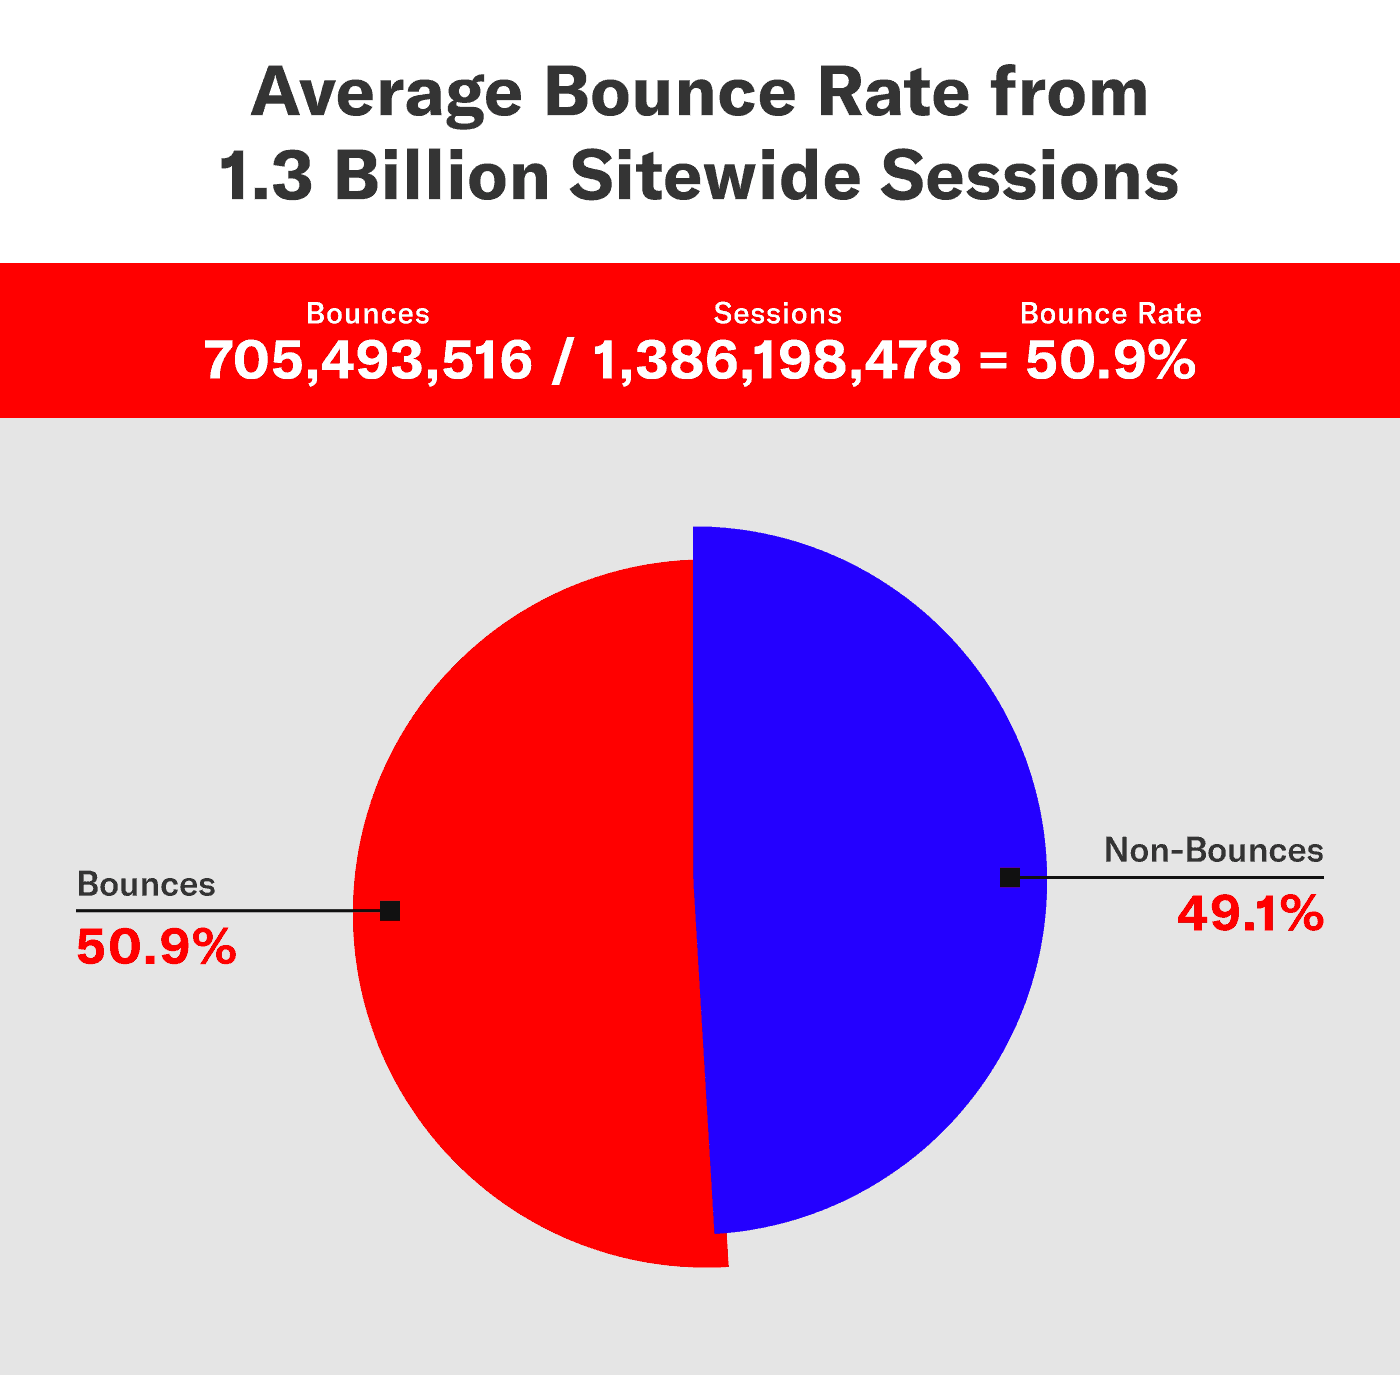 results from a bounce rate study of more than 1.3 billion sessions